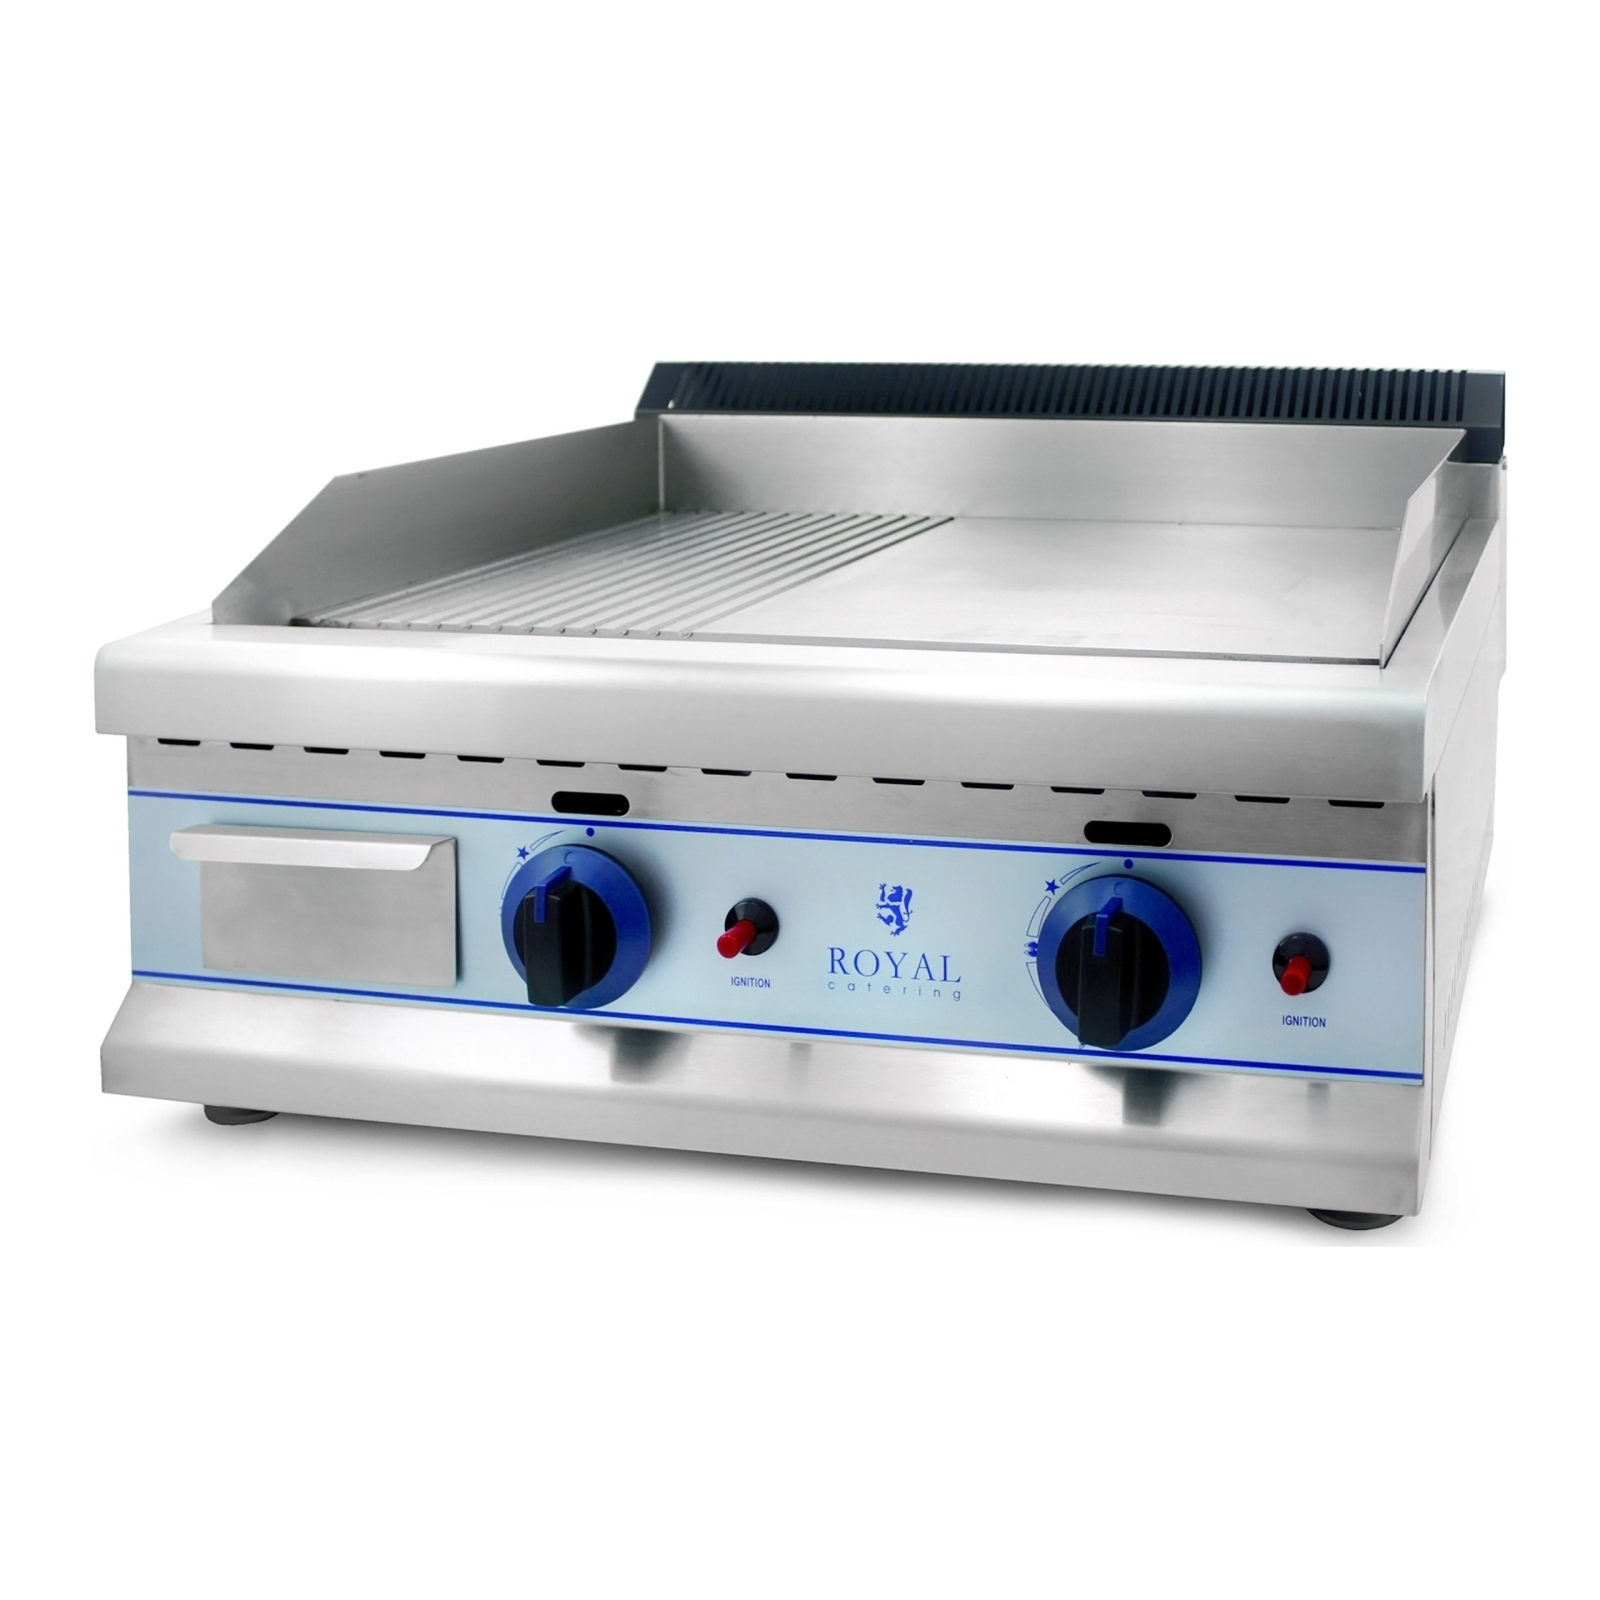 Royal Catering Gas-Doppelgrill - 65 cm - Erdgas - 20 mbar RCGL 65GE20H